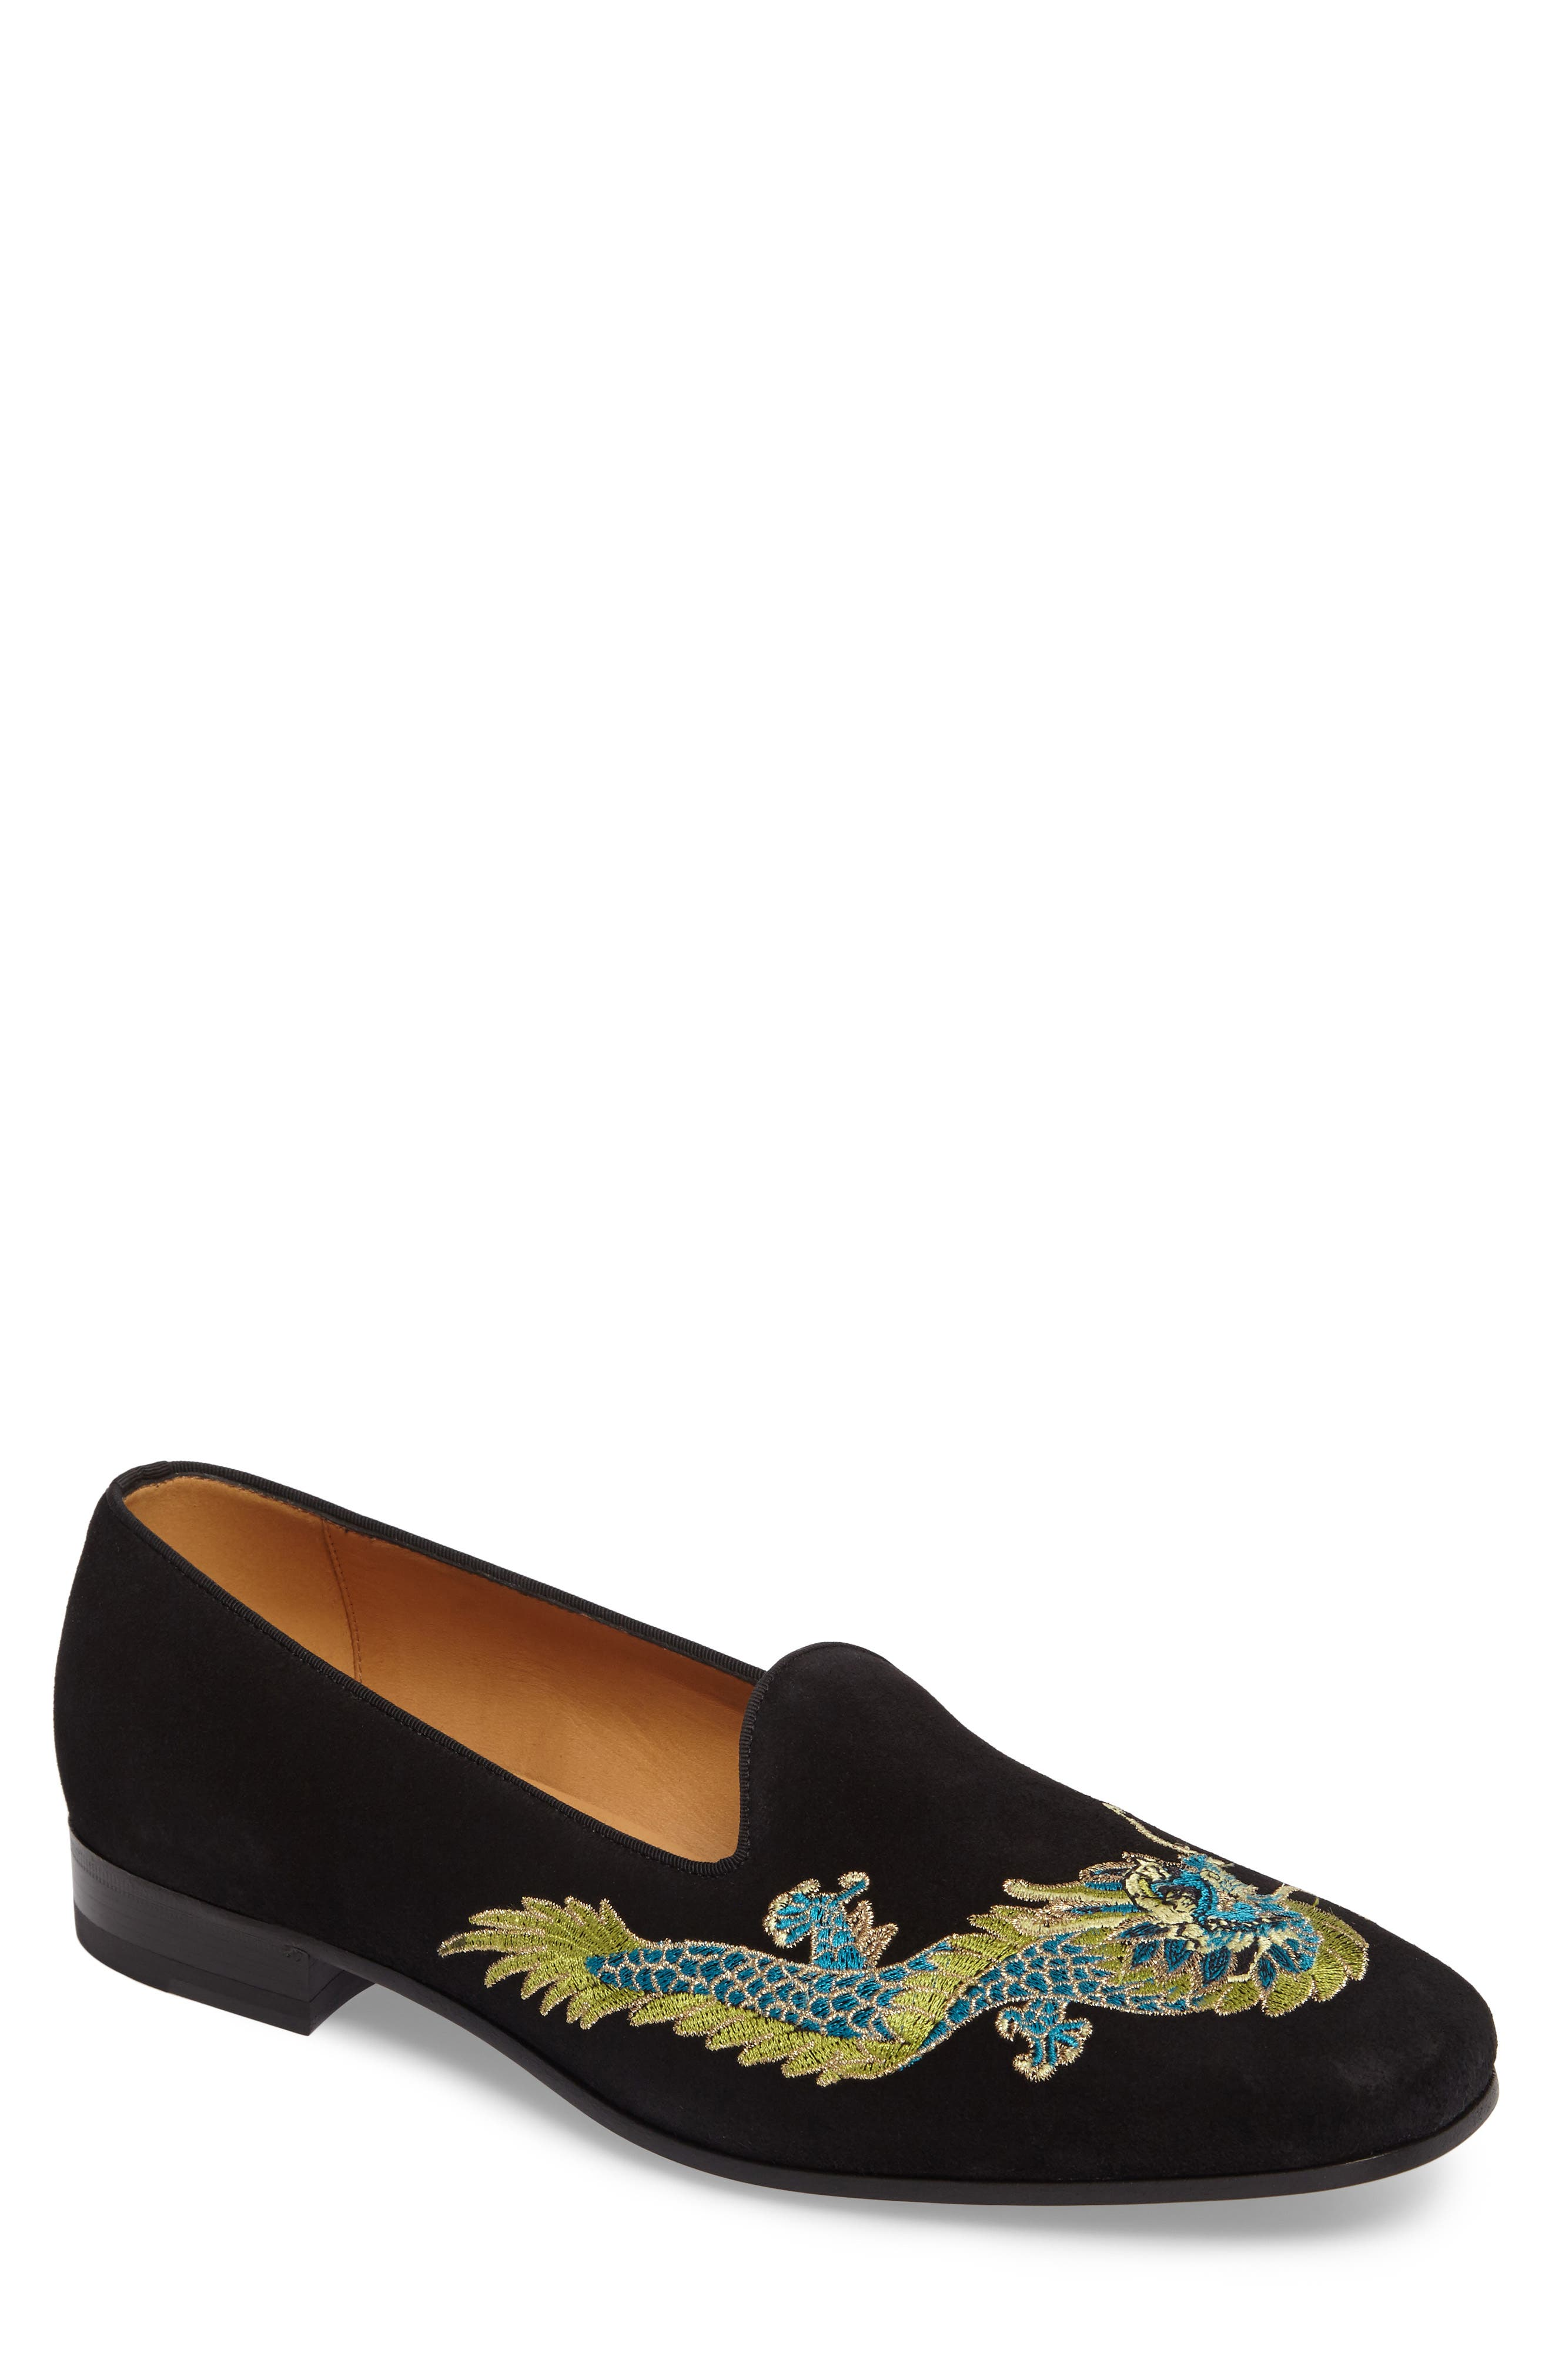 Dragon Embroidered Suede Loafer,                         Main,                         color, BLACK SUEDE